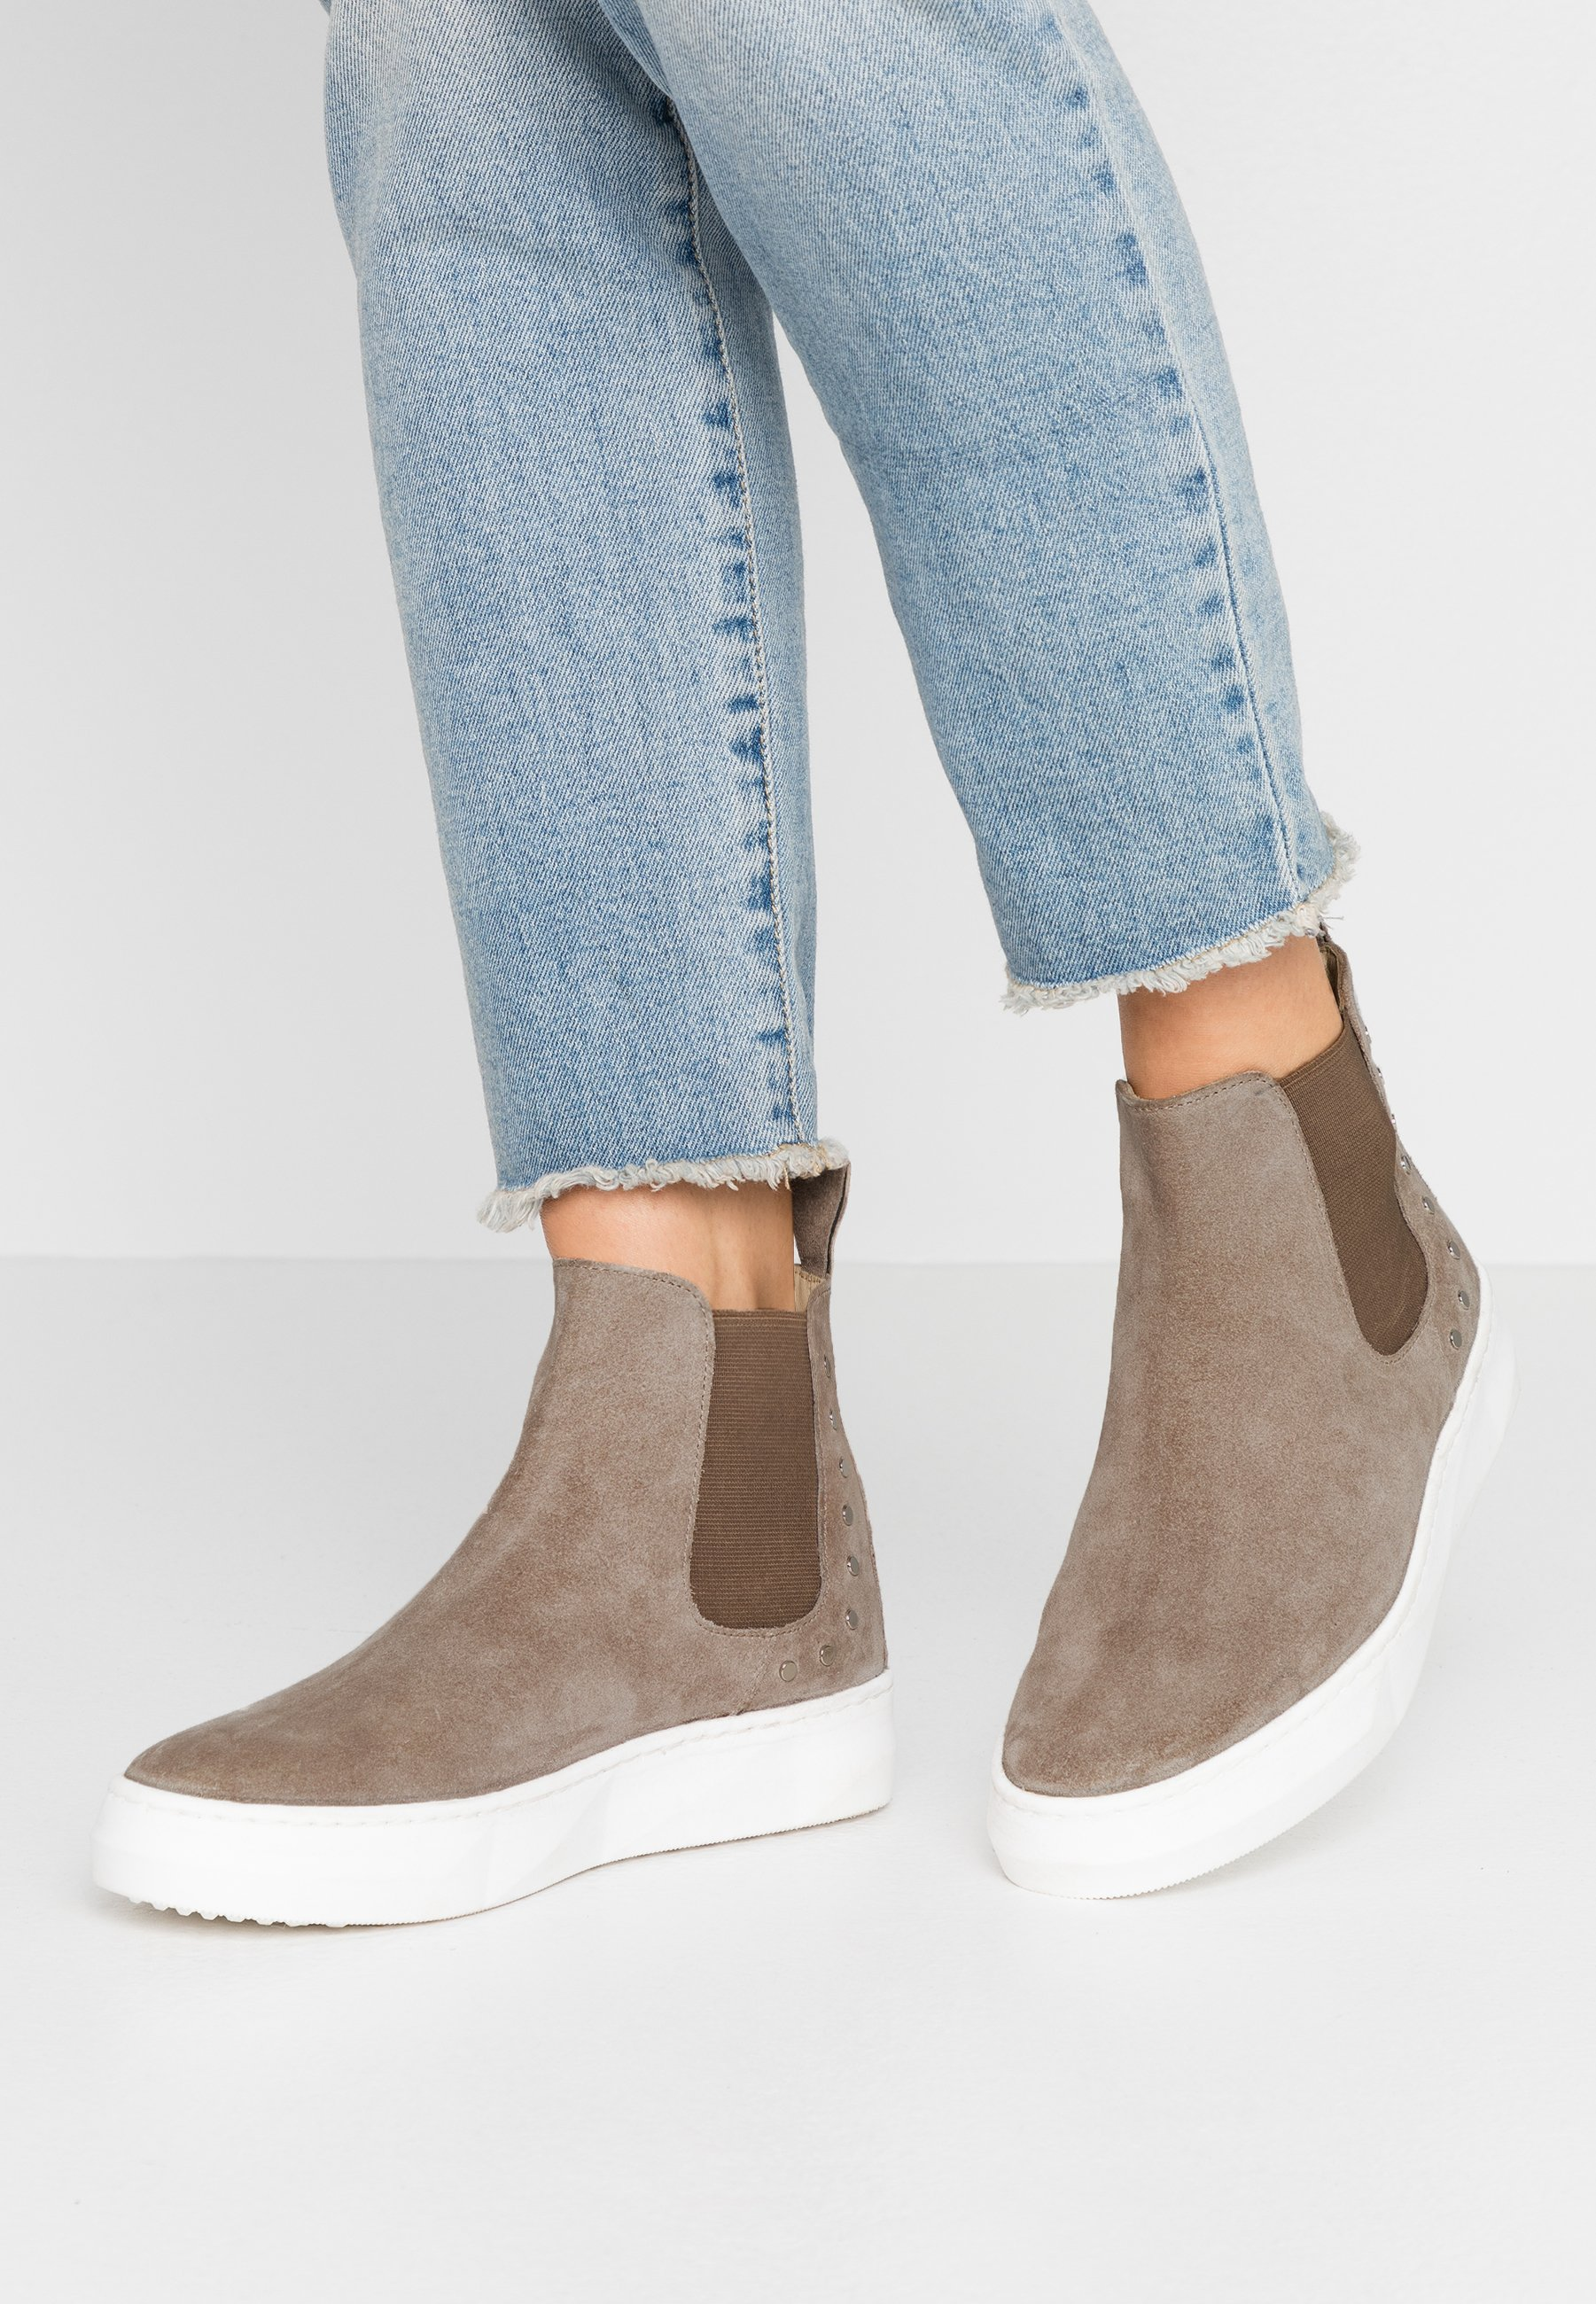 Up To Date Cheapest MAHONY BERN - Ankle boots - taupe | women's shoes 2020 oi239